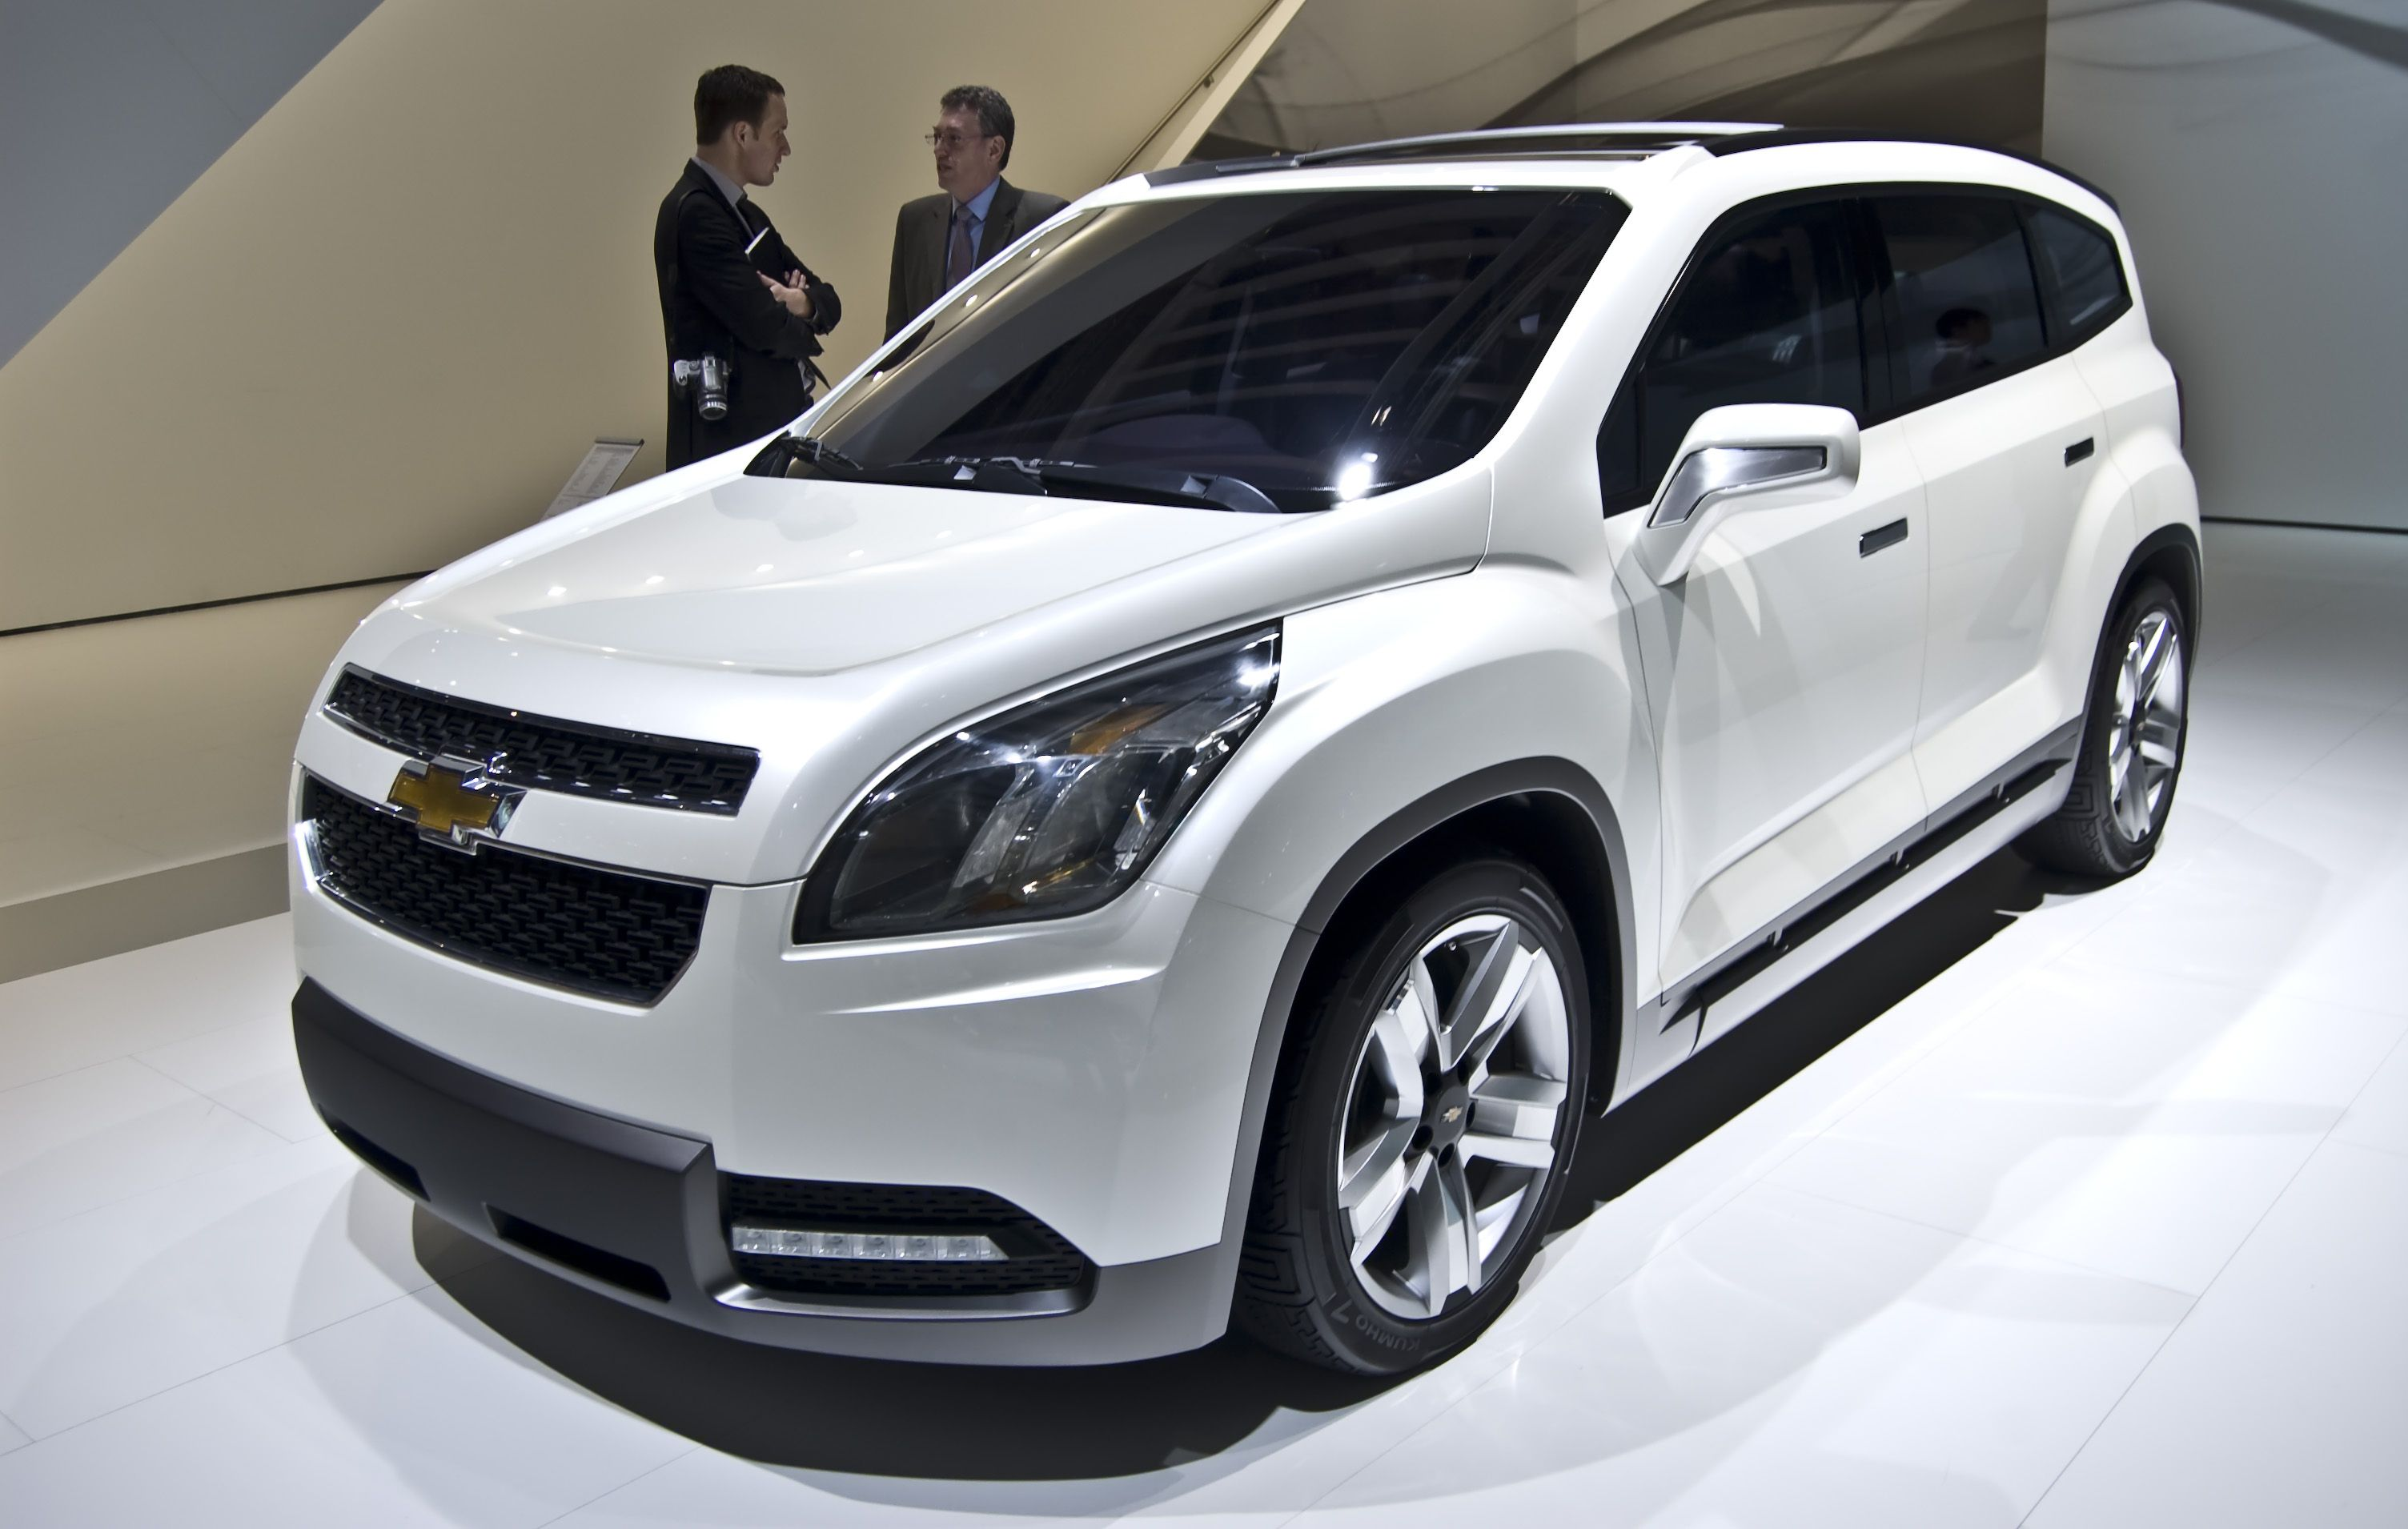 Chevrolet Orlando Pictures Information And Specs Auto Chevrolet Orlando Chevrolet General Motors Cars